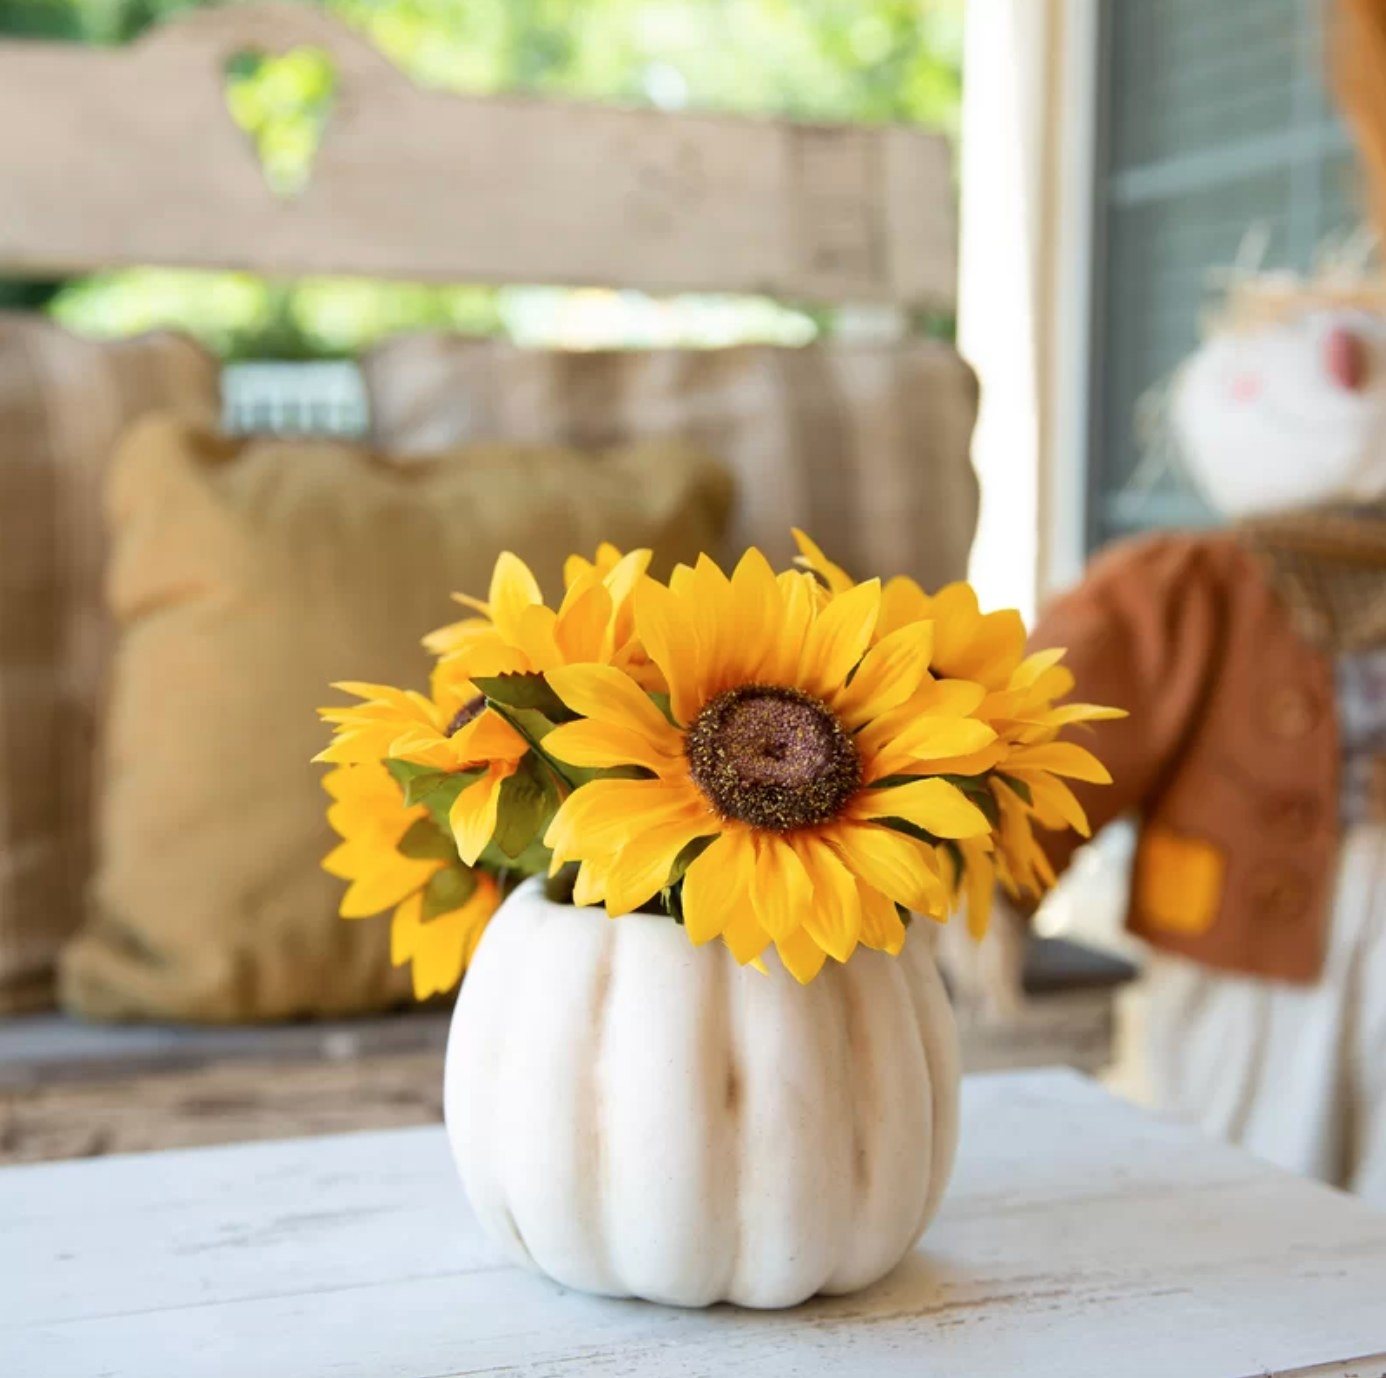 The sunflower floral arrangement in a white pumpkin pot